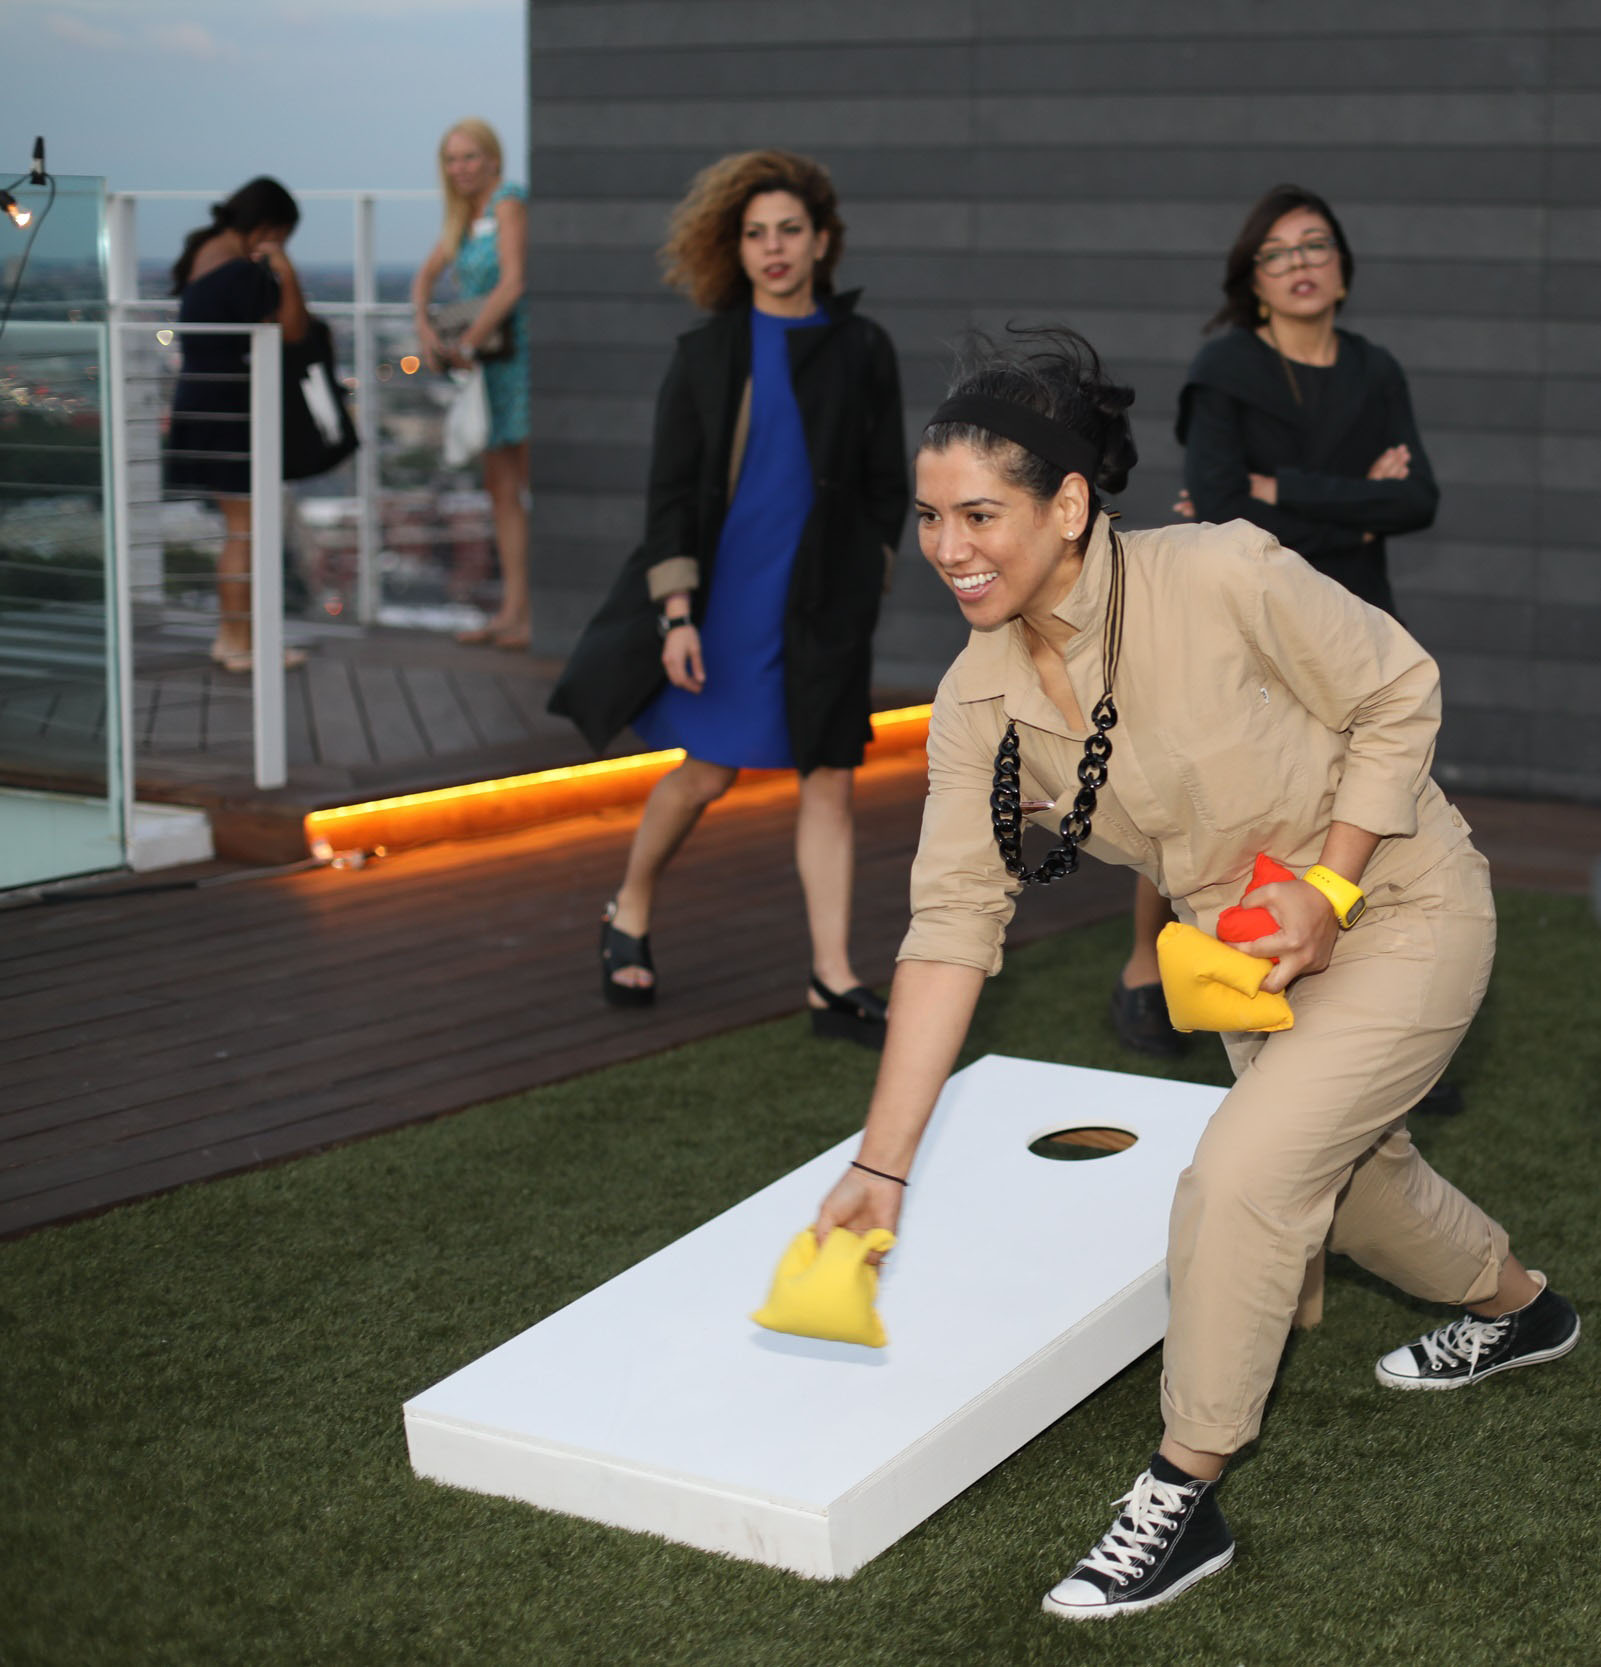 Priscilla Ghaznavi, Benjamin Moore color and design director, playing cornhole